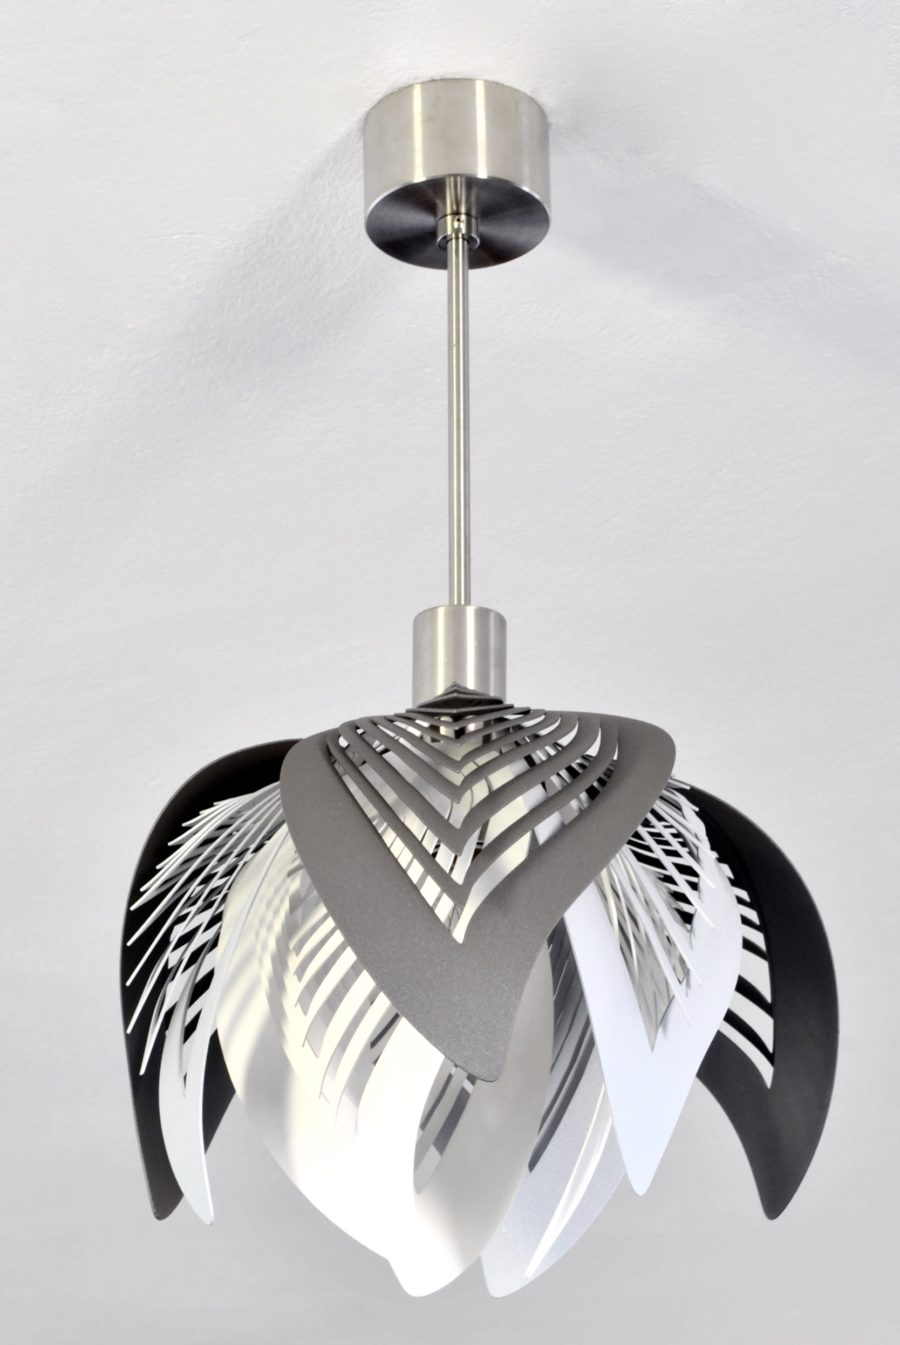 Ceiling Lamp IN THE PARK Stainless Steel Archerlamps